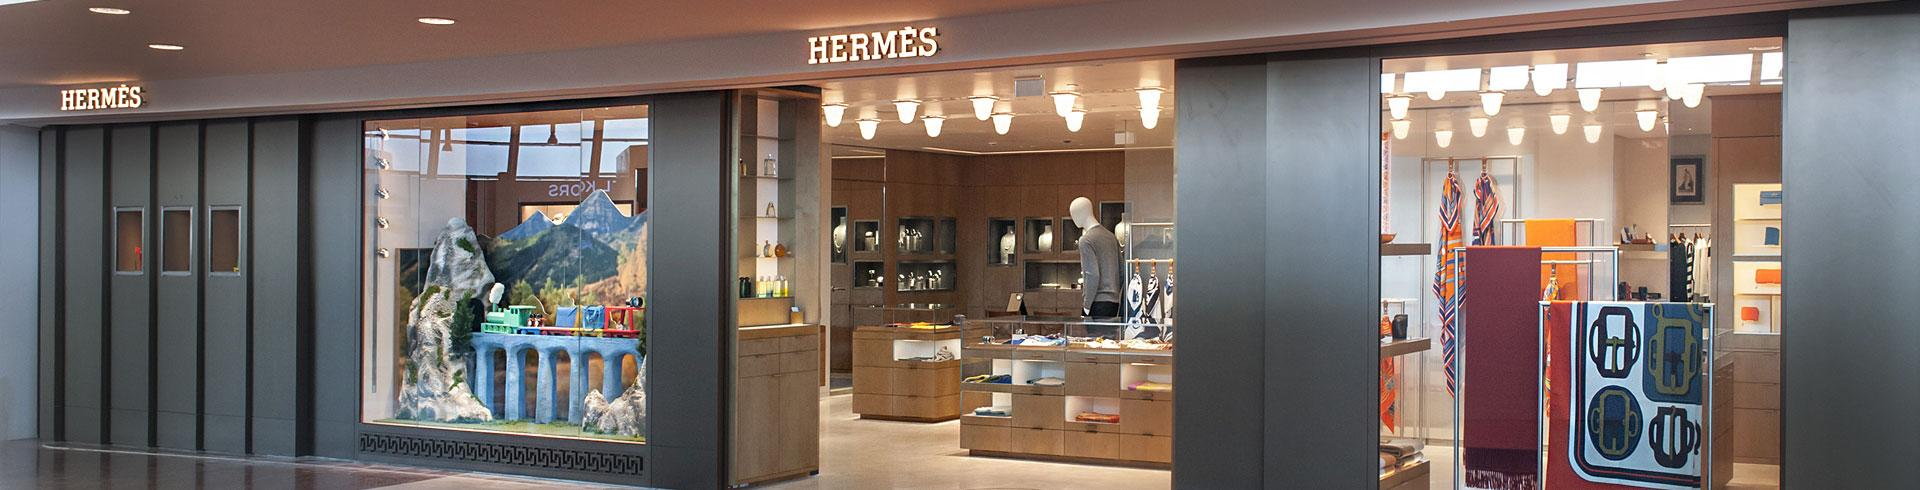 herm s mode accessoires terminal 1 boutiques services la promenade nice airport. Black Bedroom Furniture Sets. Home Design Ideas